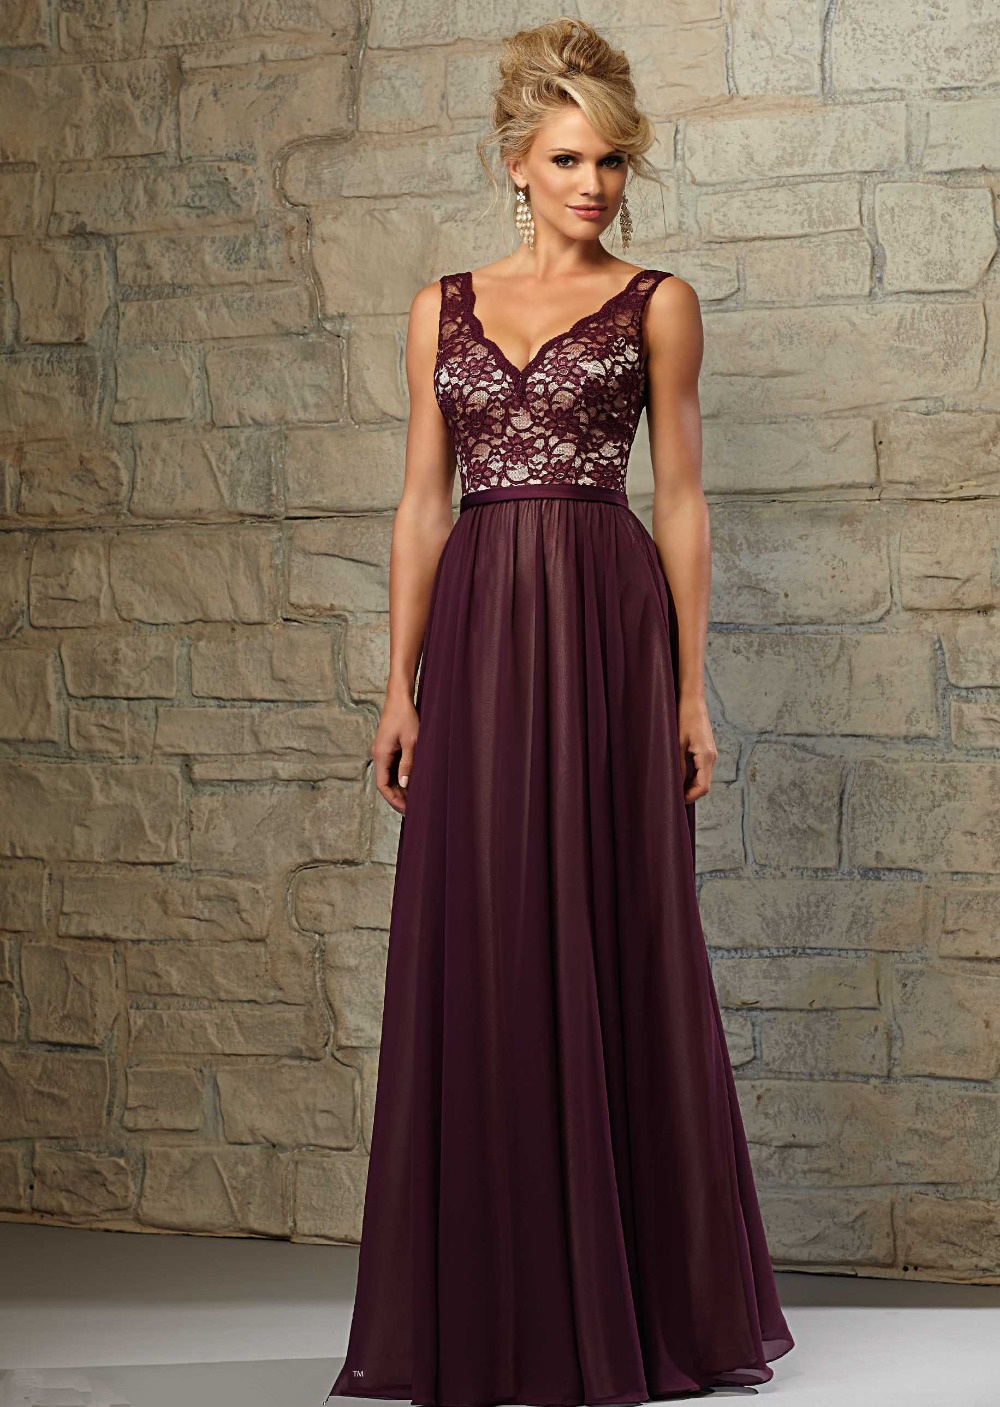 Burgundy lace bridesmaid dresses bridesmaid dressesdressesss burgundy lace bridesmaid dresses ombrellifo Image collections